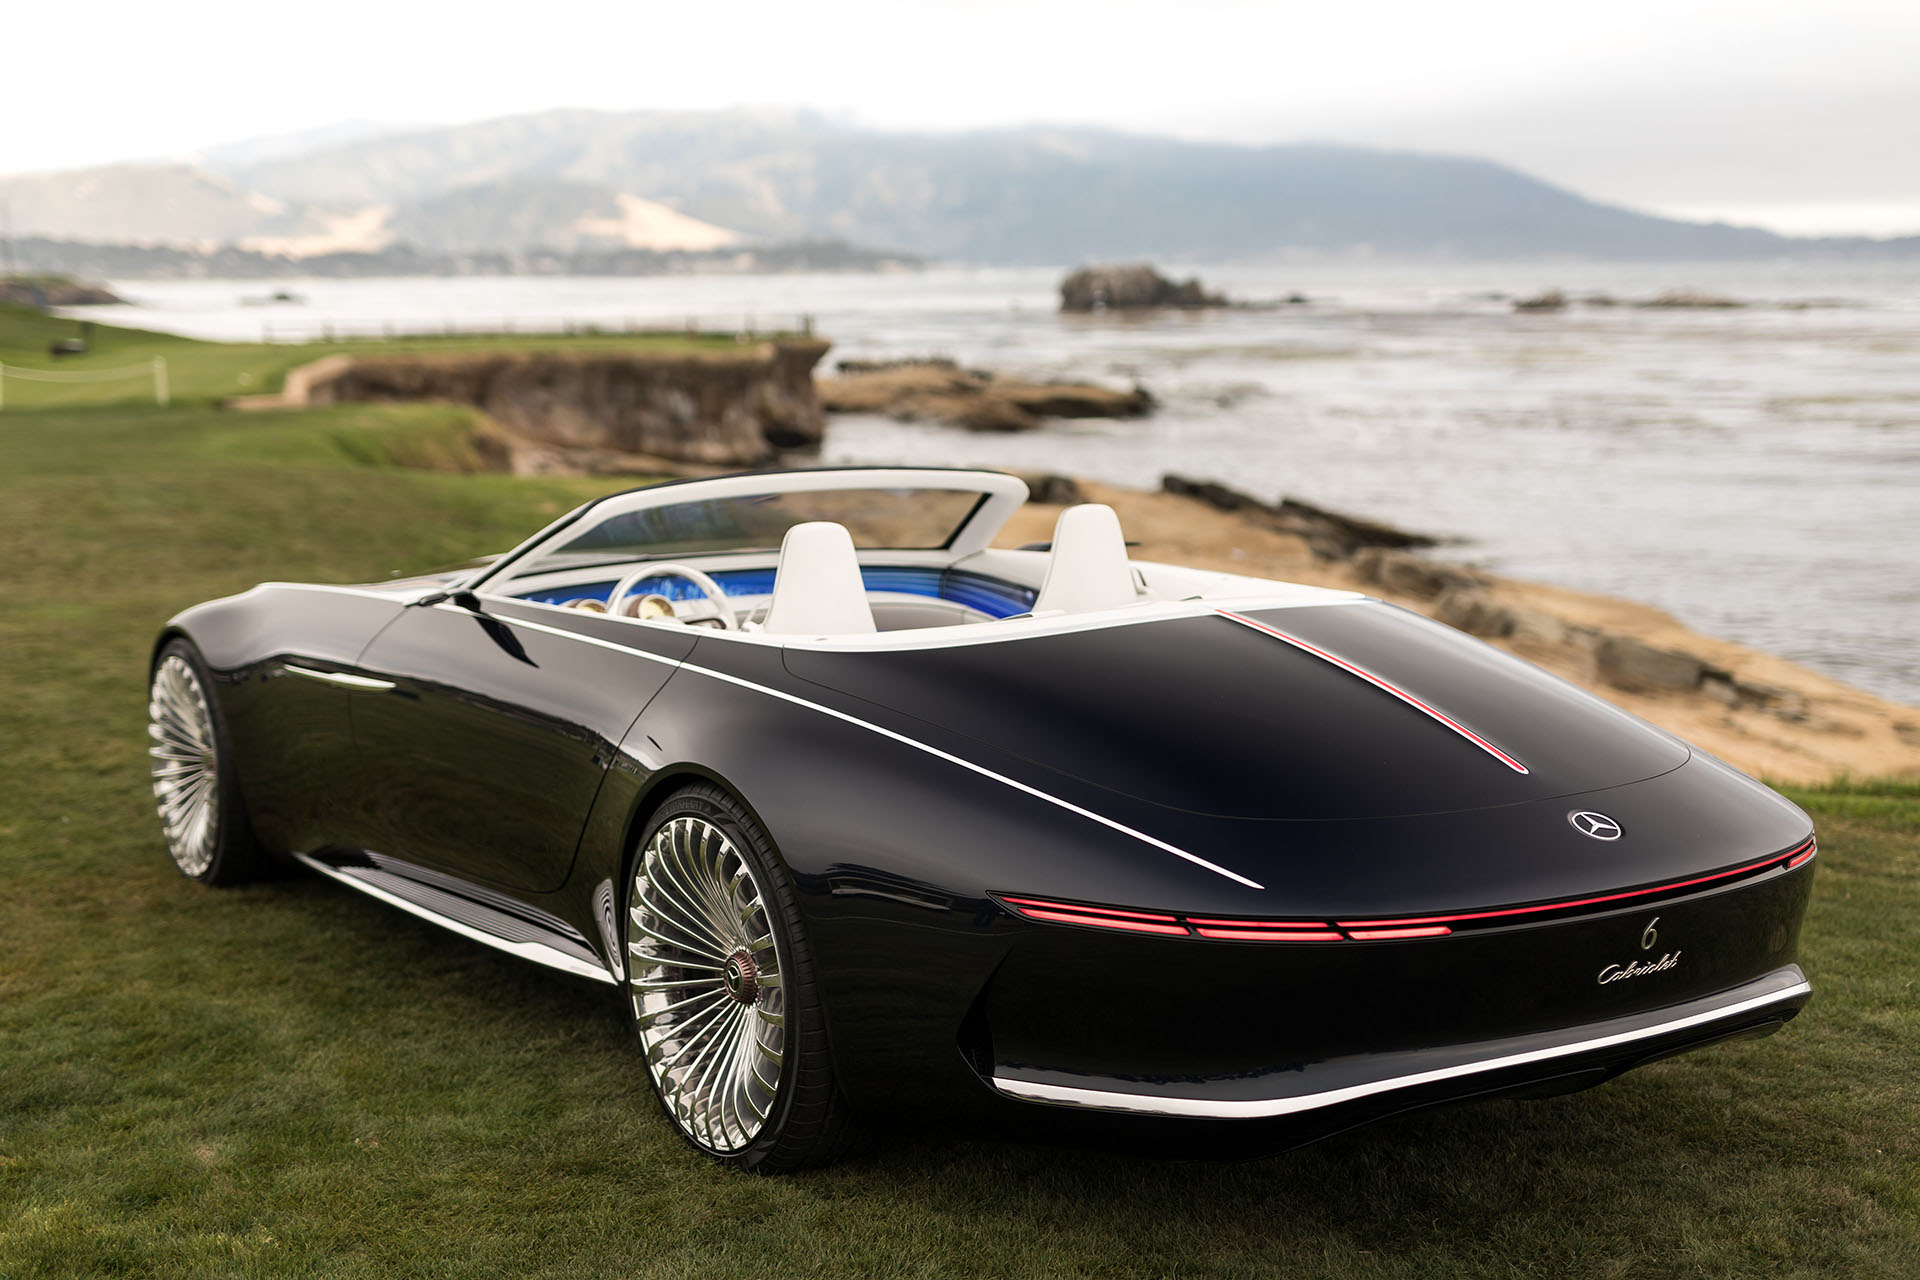 2017 Monterey The Vision Mercedes Maybach 6 Cabriolet Previews The Future In Opulent Open Top